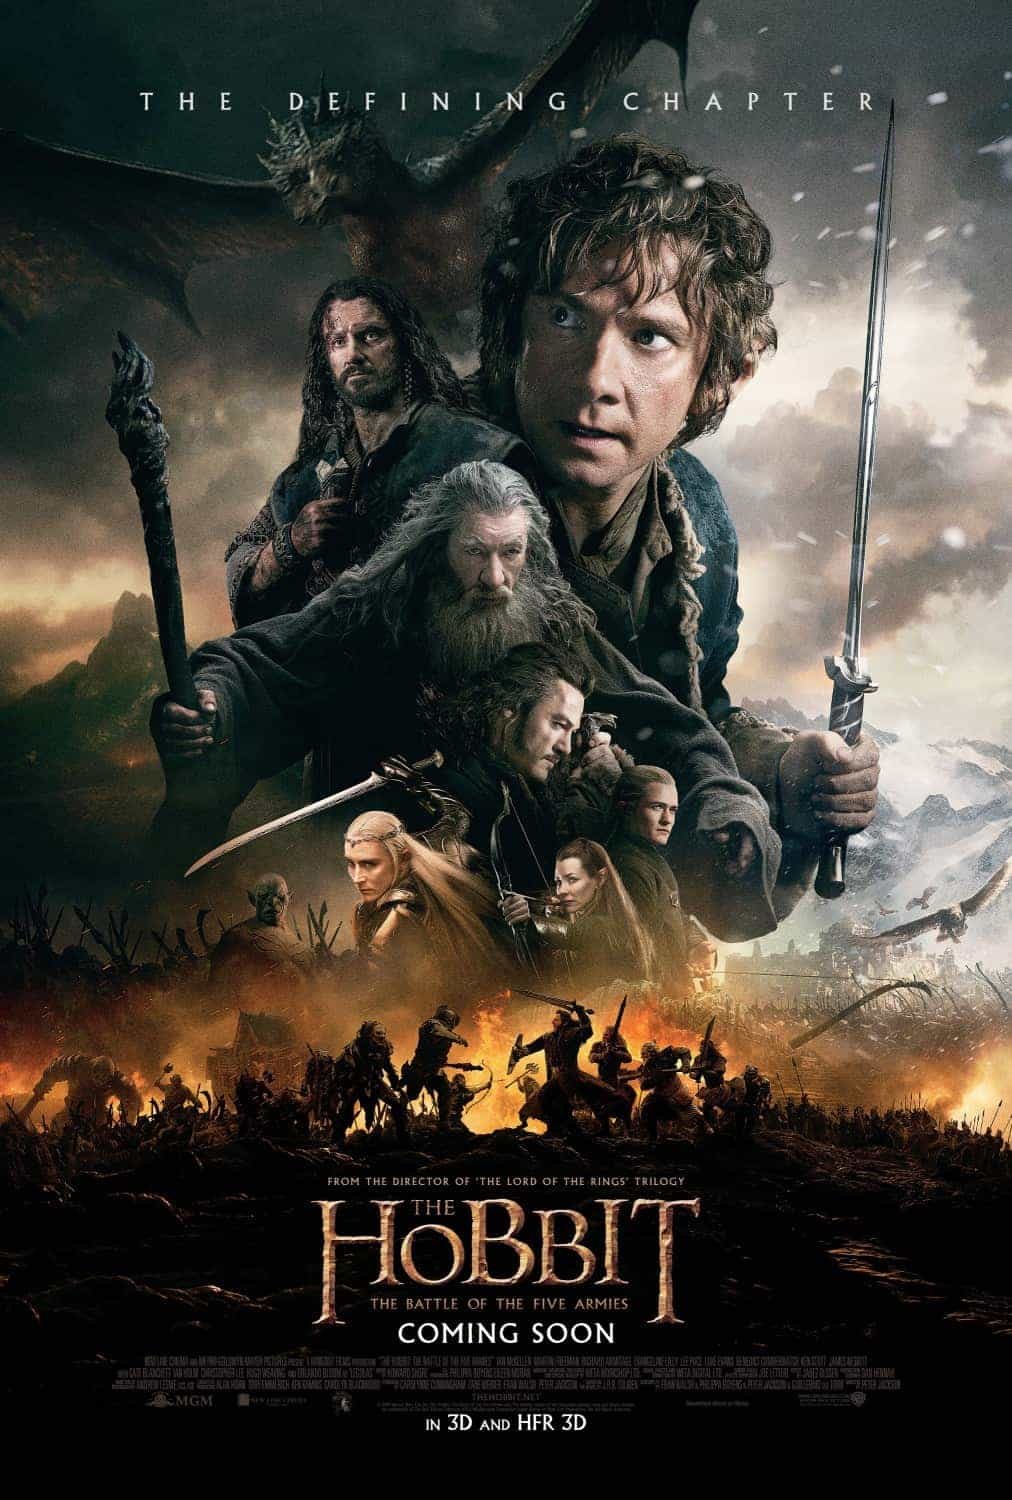 First look at Comic Con poster for The Hobbit: The Battle of the Five Armies